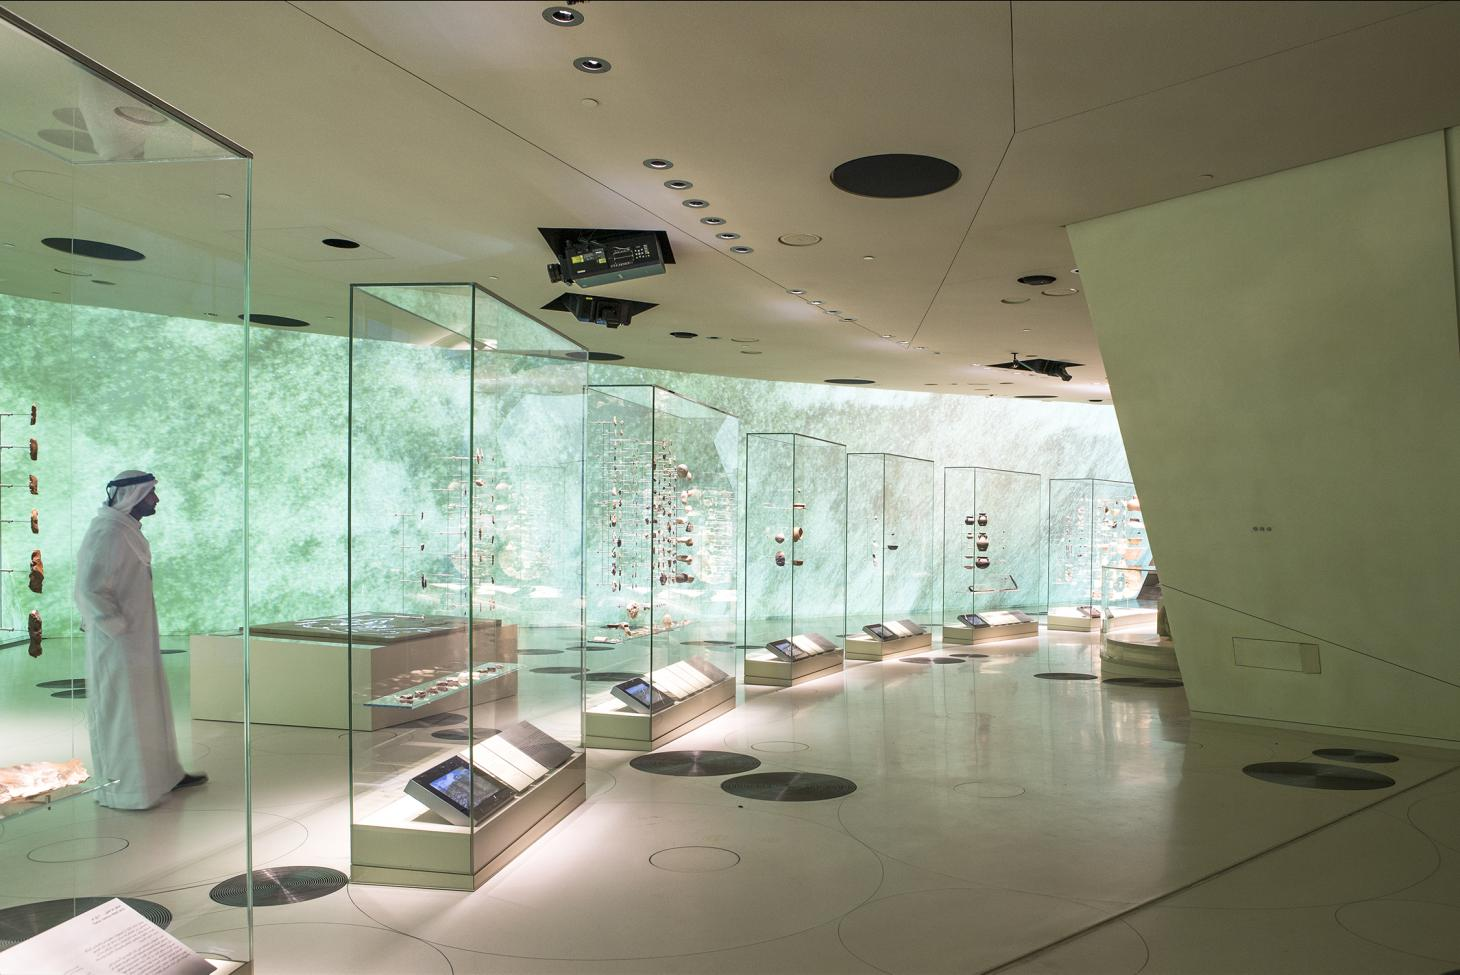 National Museum of Qatar interior